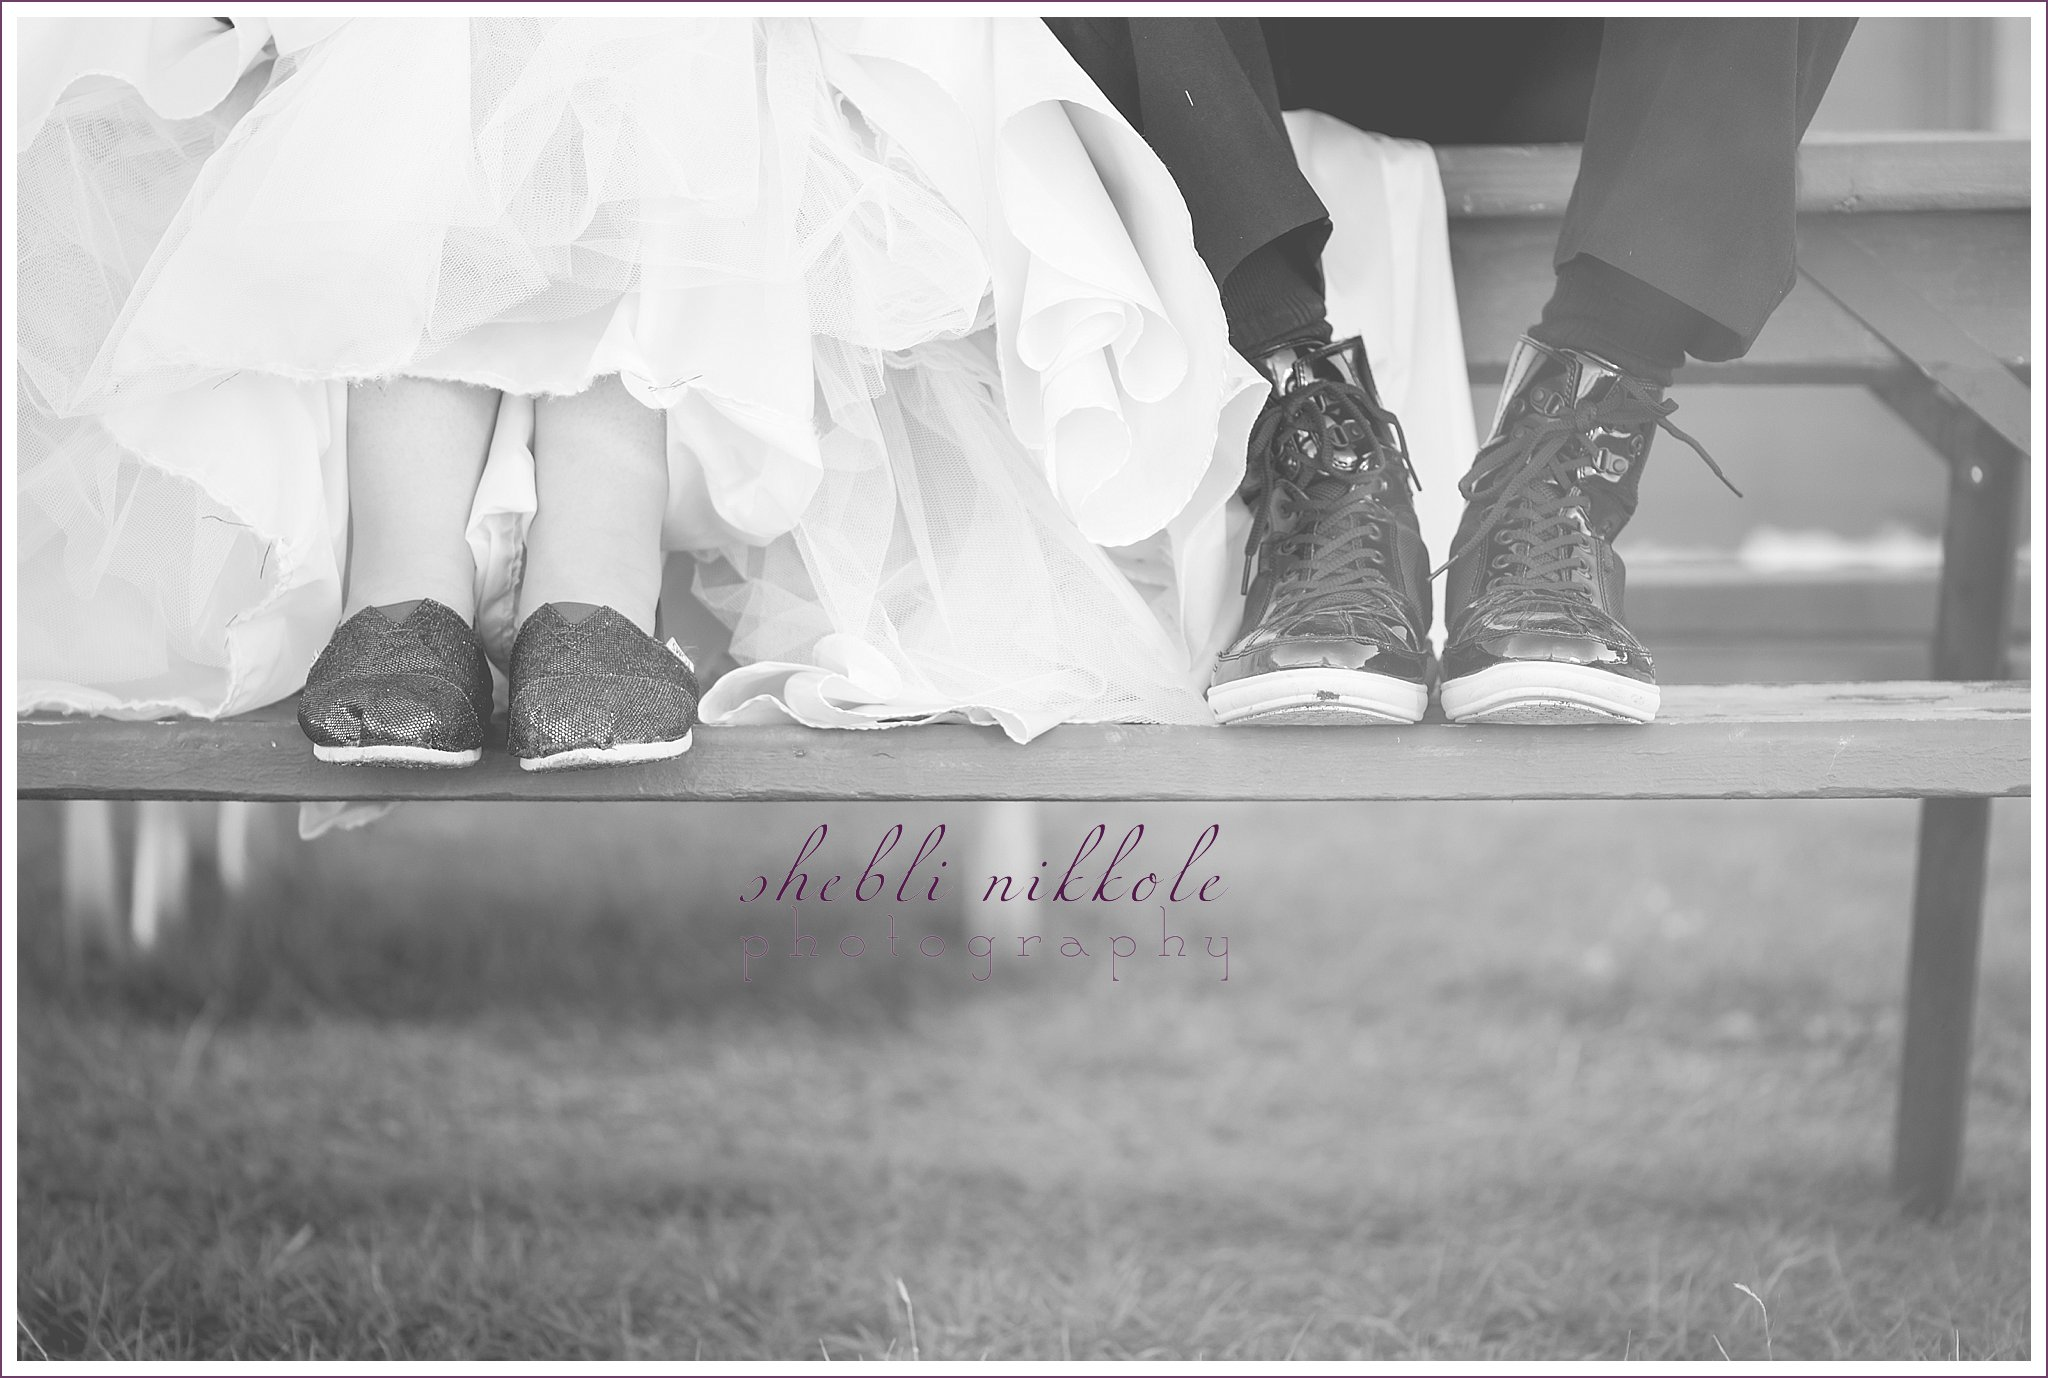 ©shebli nikkole photography 2013